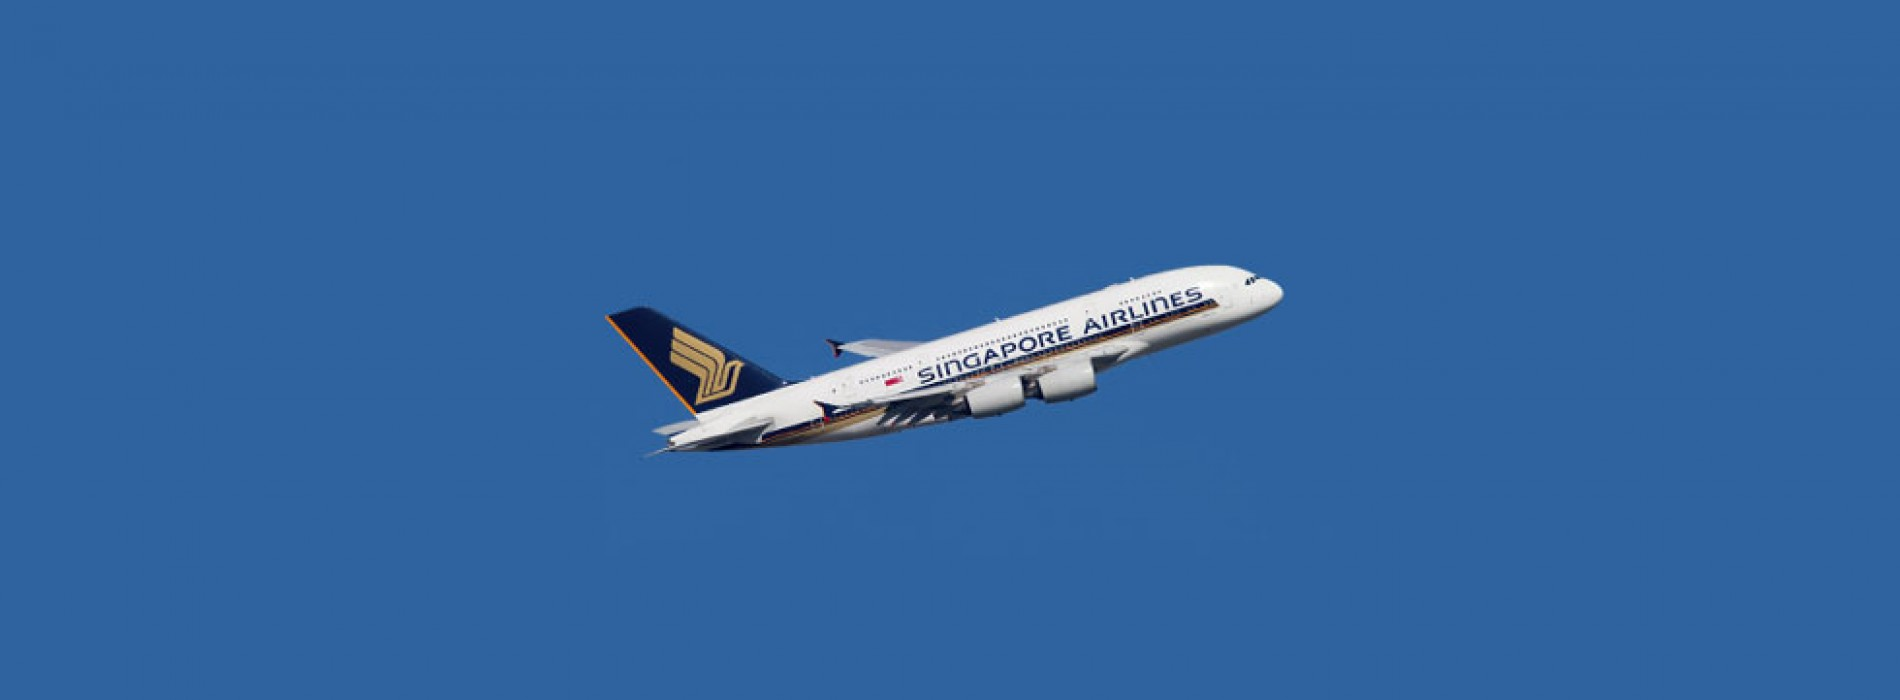 Singapore Airlines to link Canberra and Wellington with new route